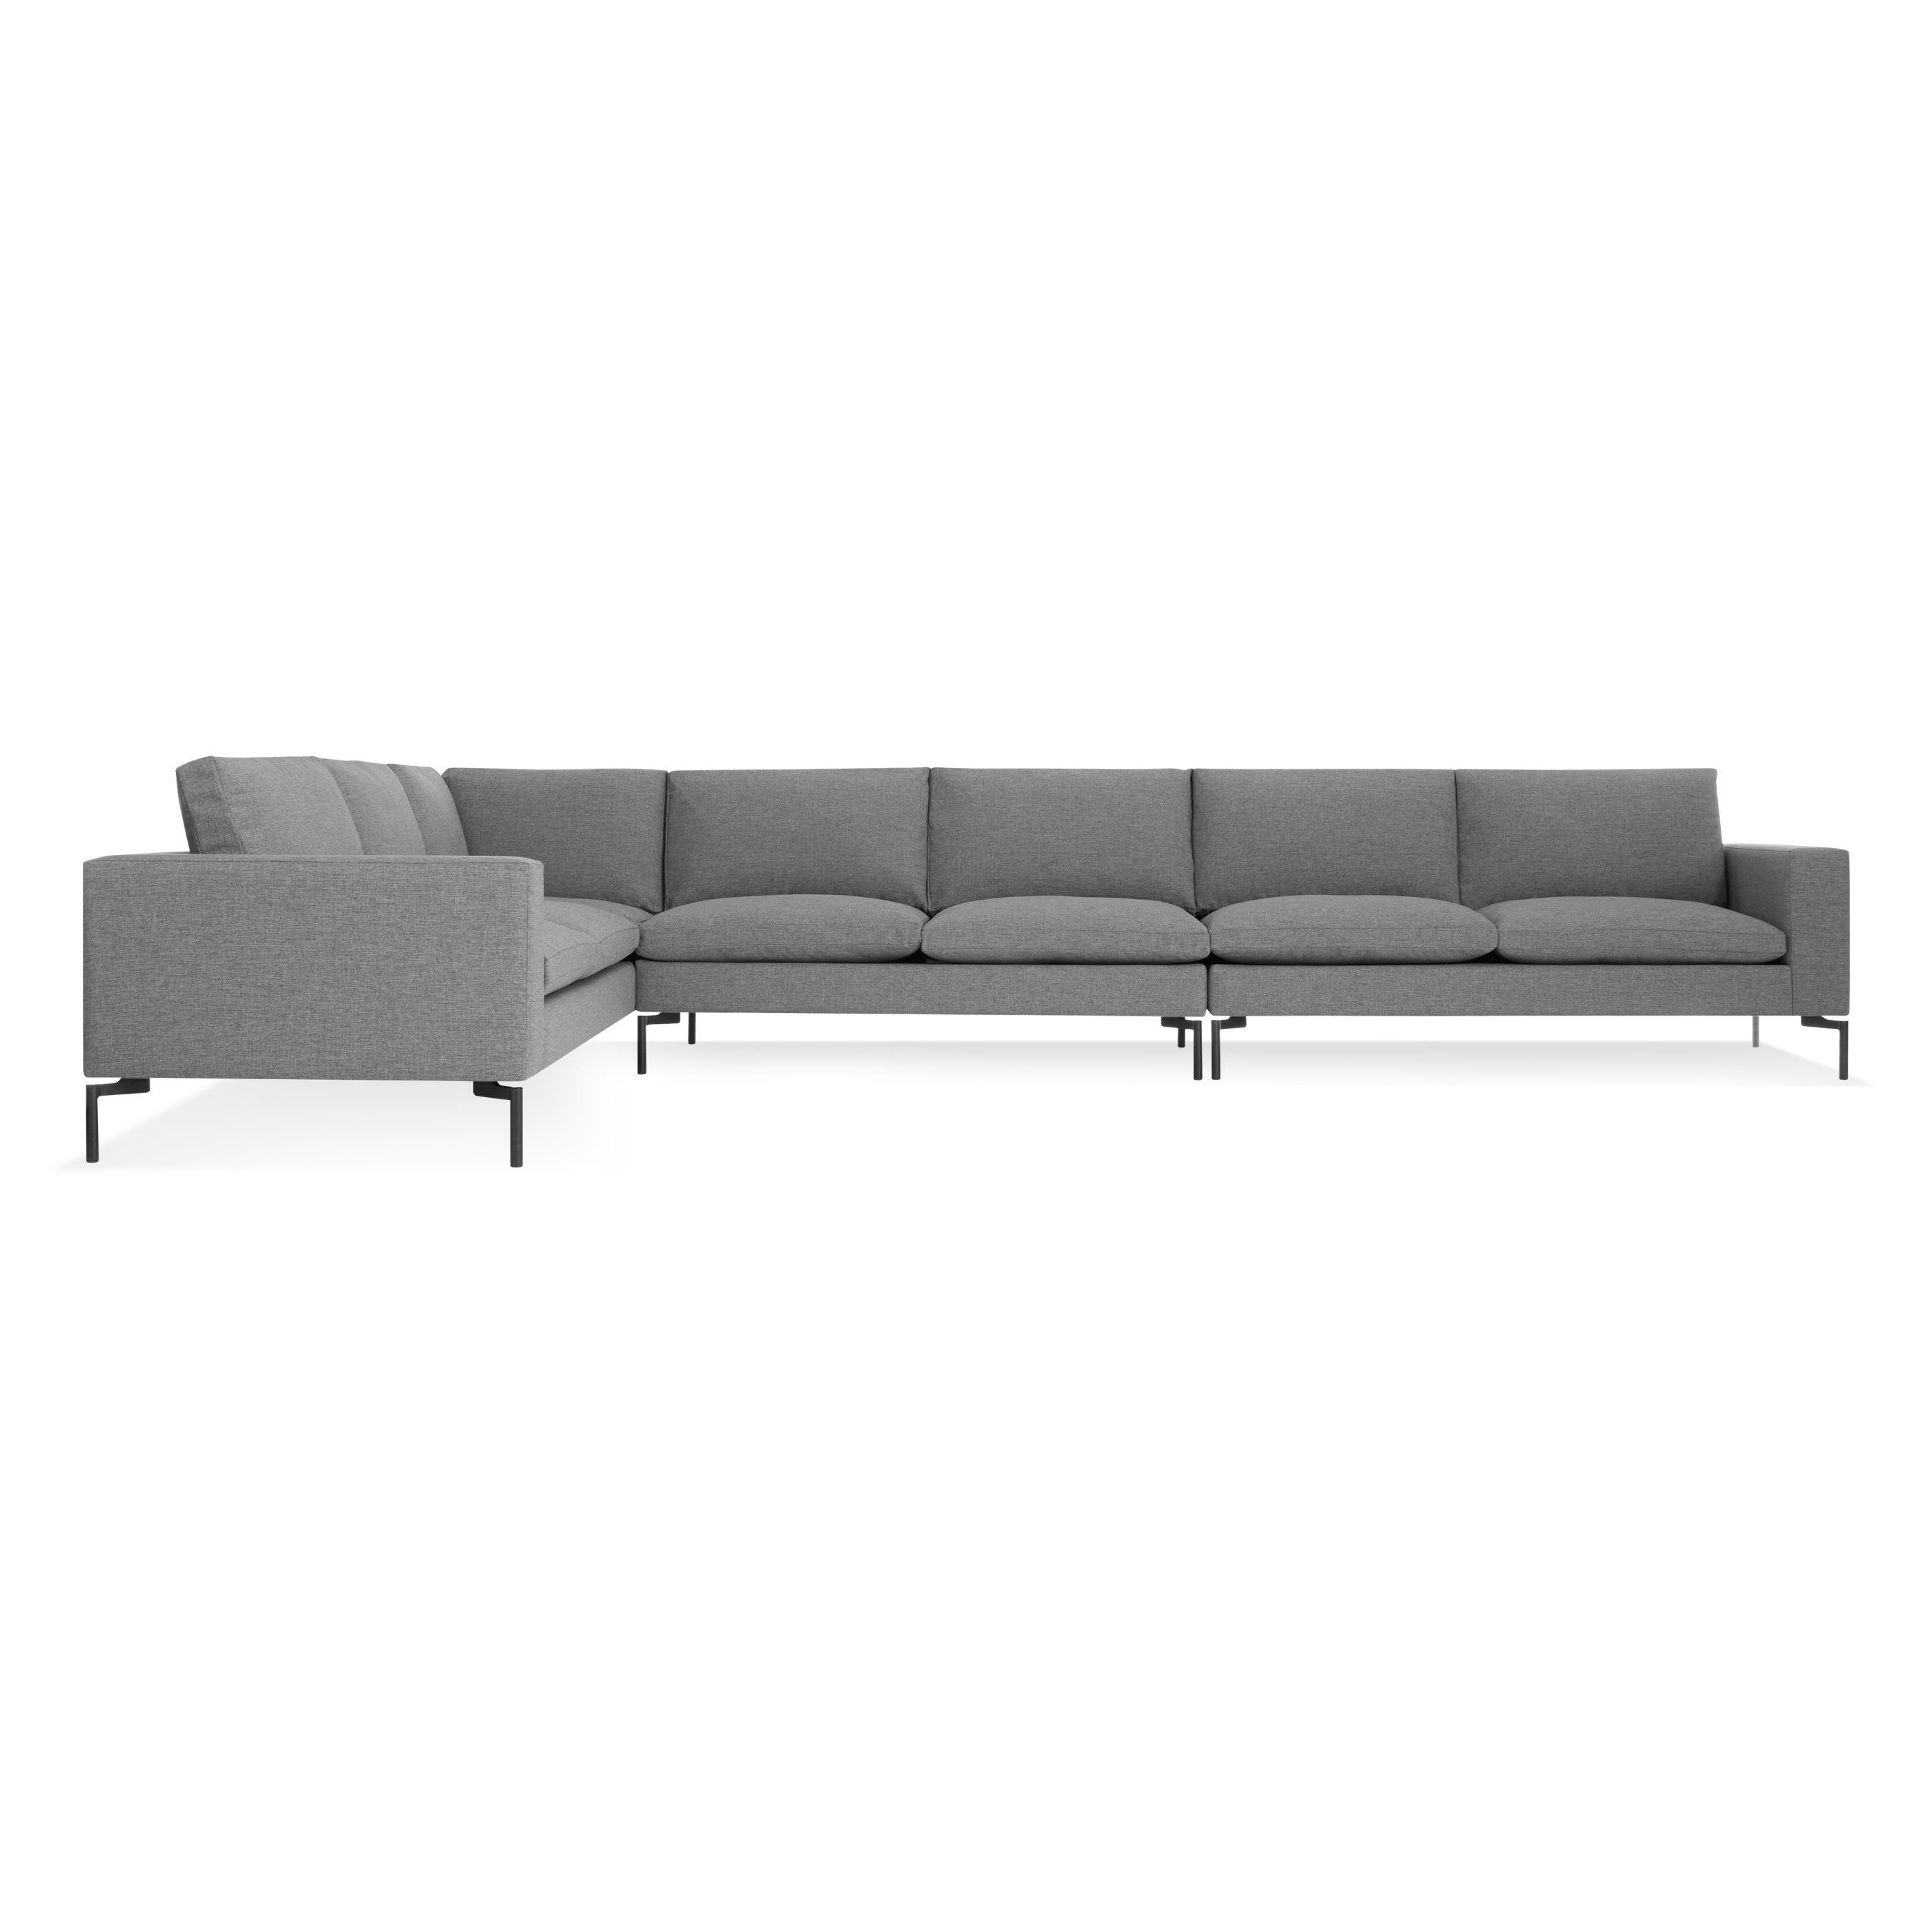 Blu Dot New Standard Left Sectional Sofa Large Large Sofa Sectional Sofa Furniture